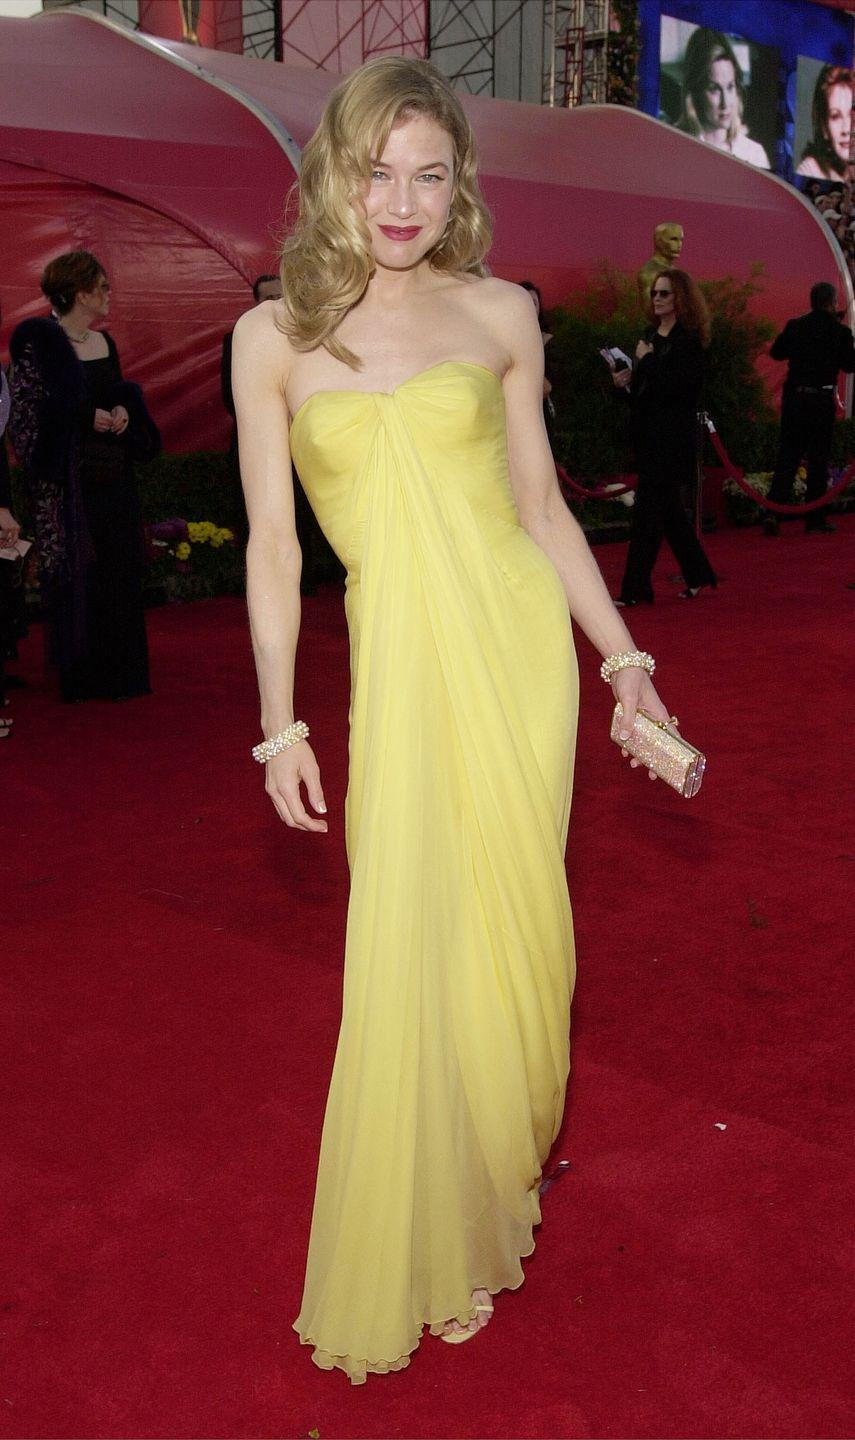 <p>Nominated for her role in <em>Bridget Jones's Diary,</em> Renee Zellweger debuted her return to her svelte figure in a sunny yellow vintage Jean Dessès dress. </p>